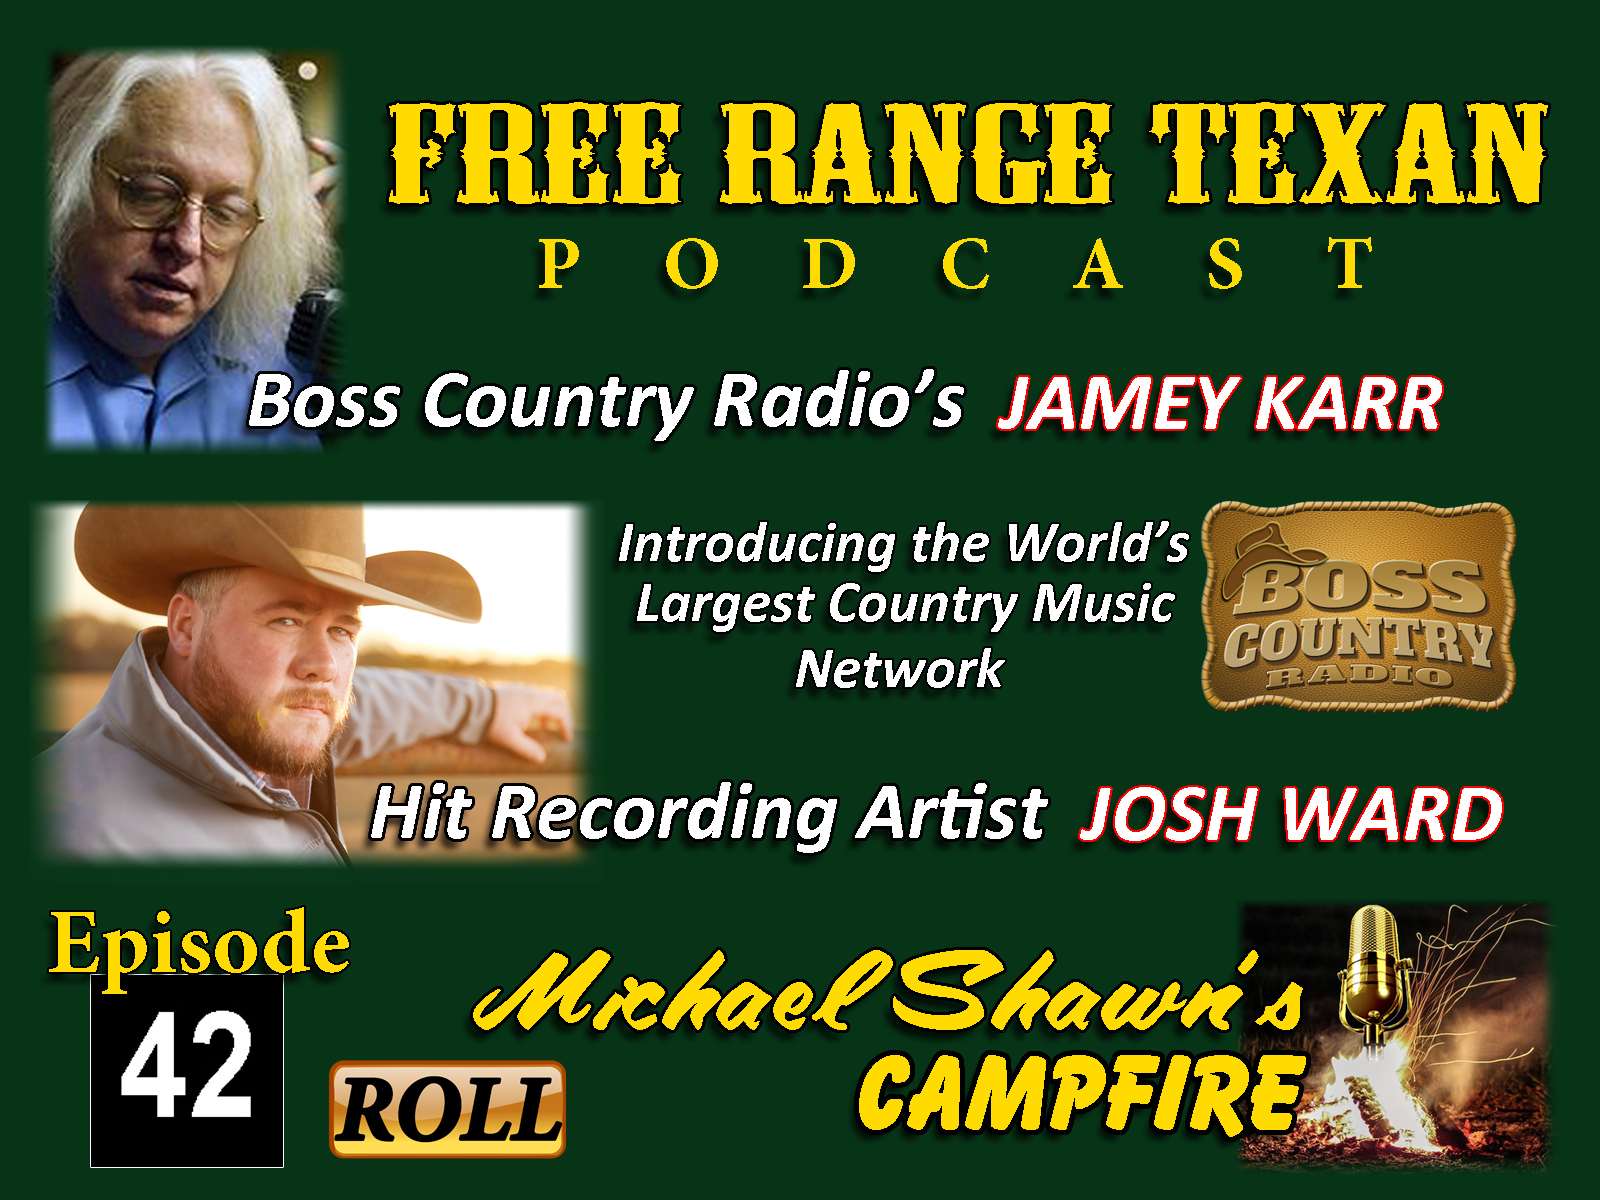 Free Range Texan Episode 42